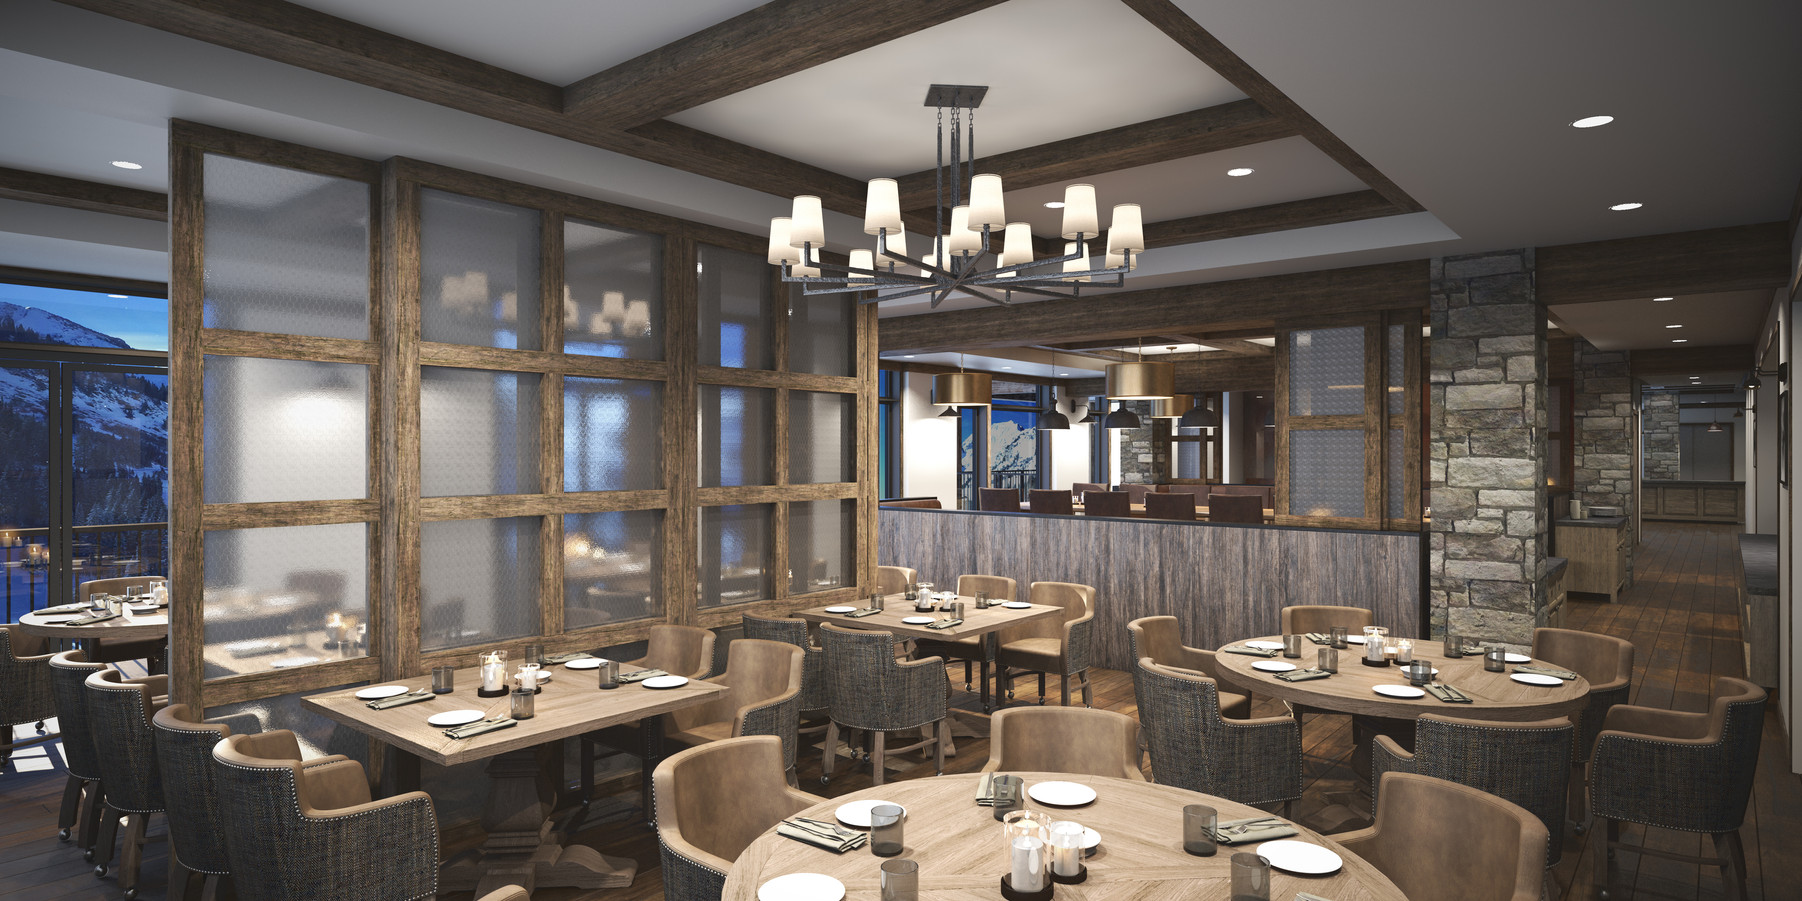 05.The Snowpine Lodge Private Dining